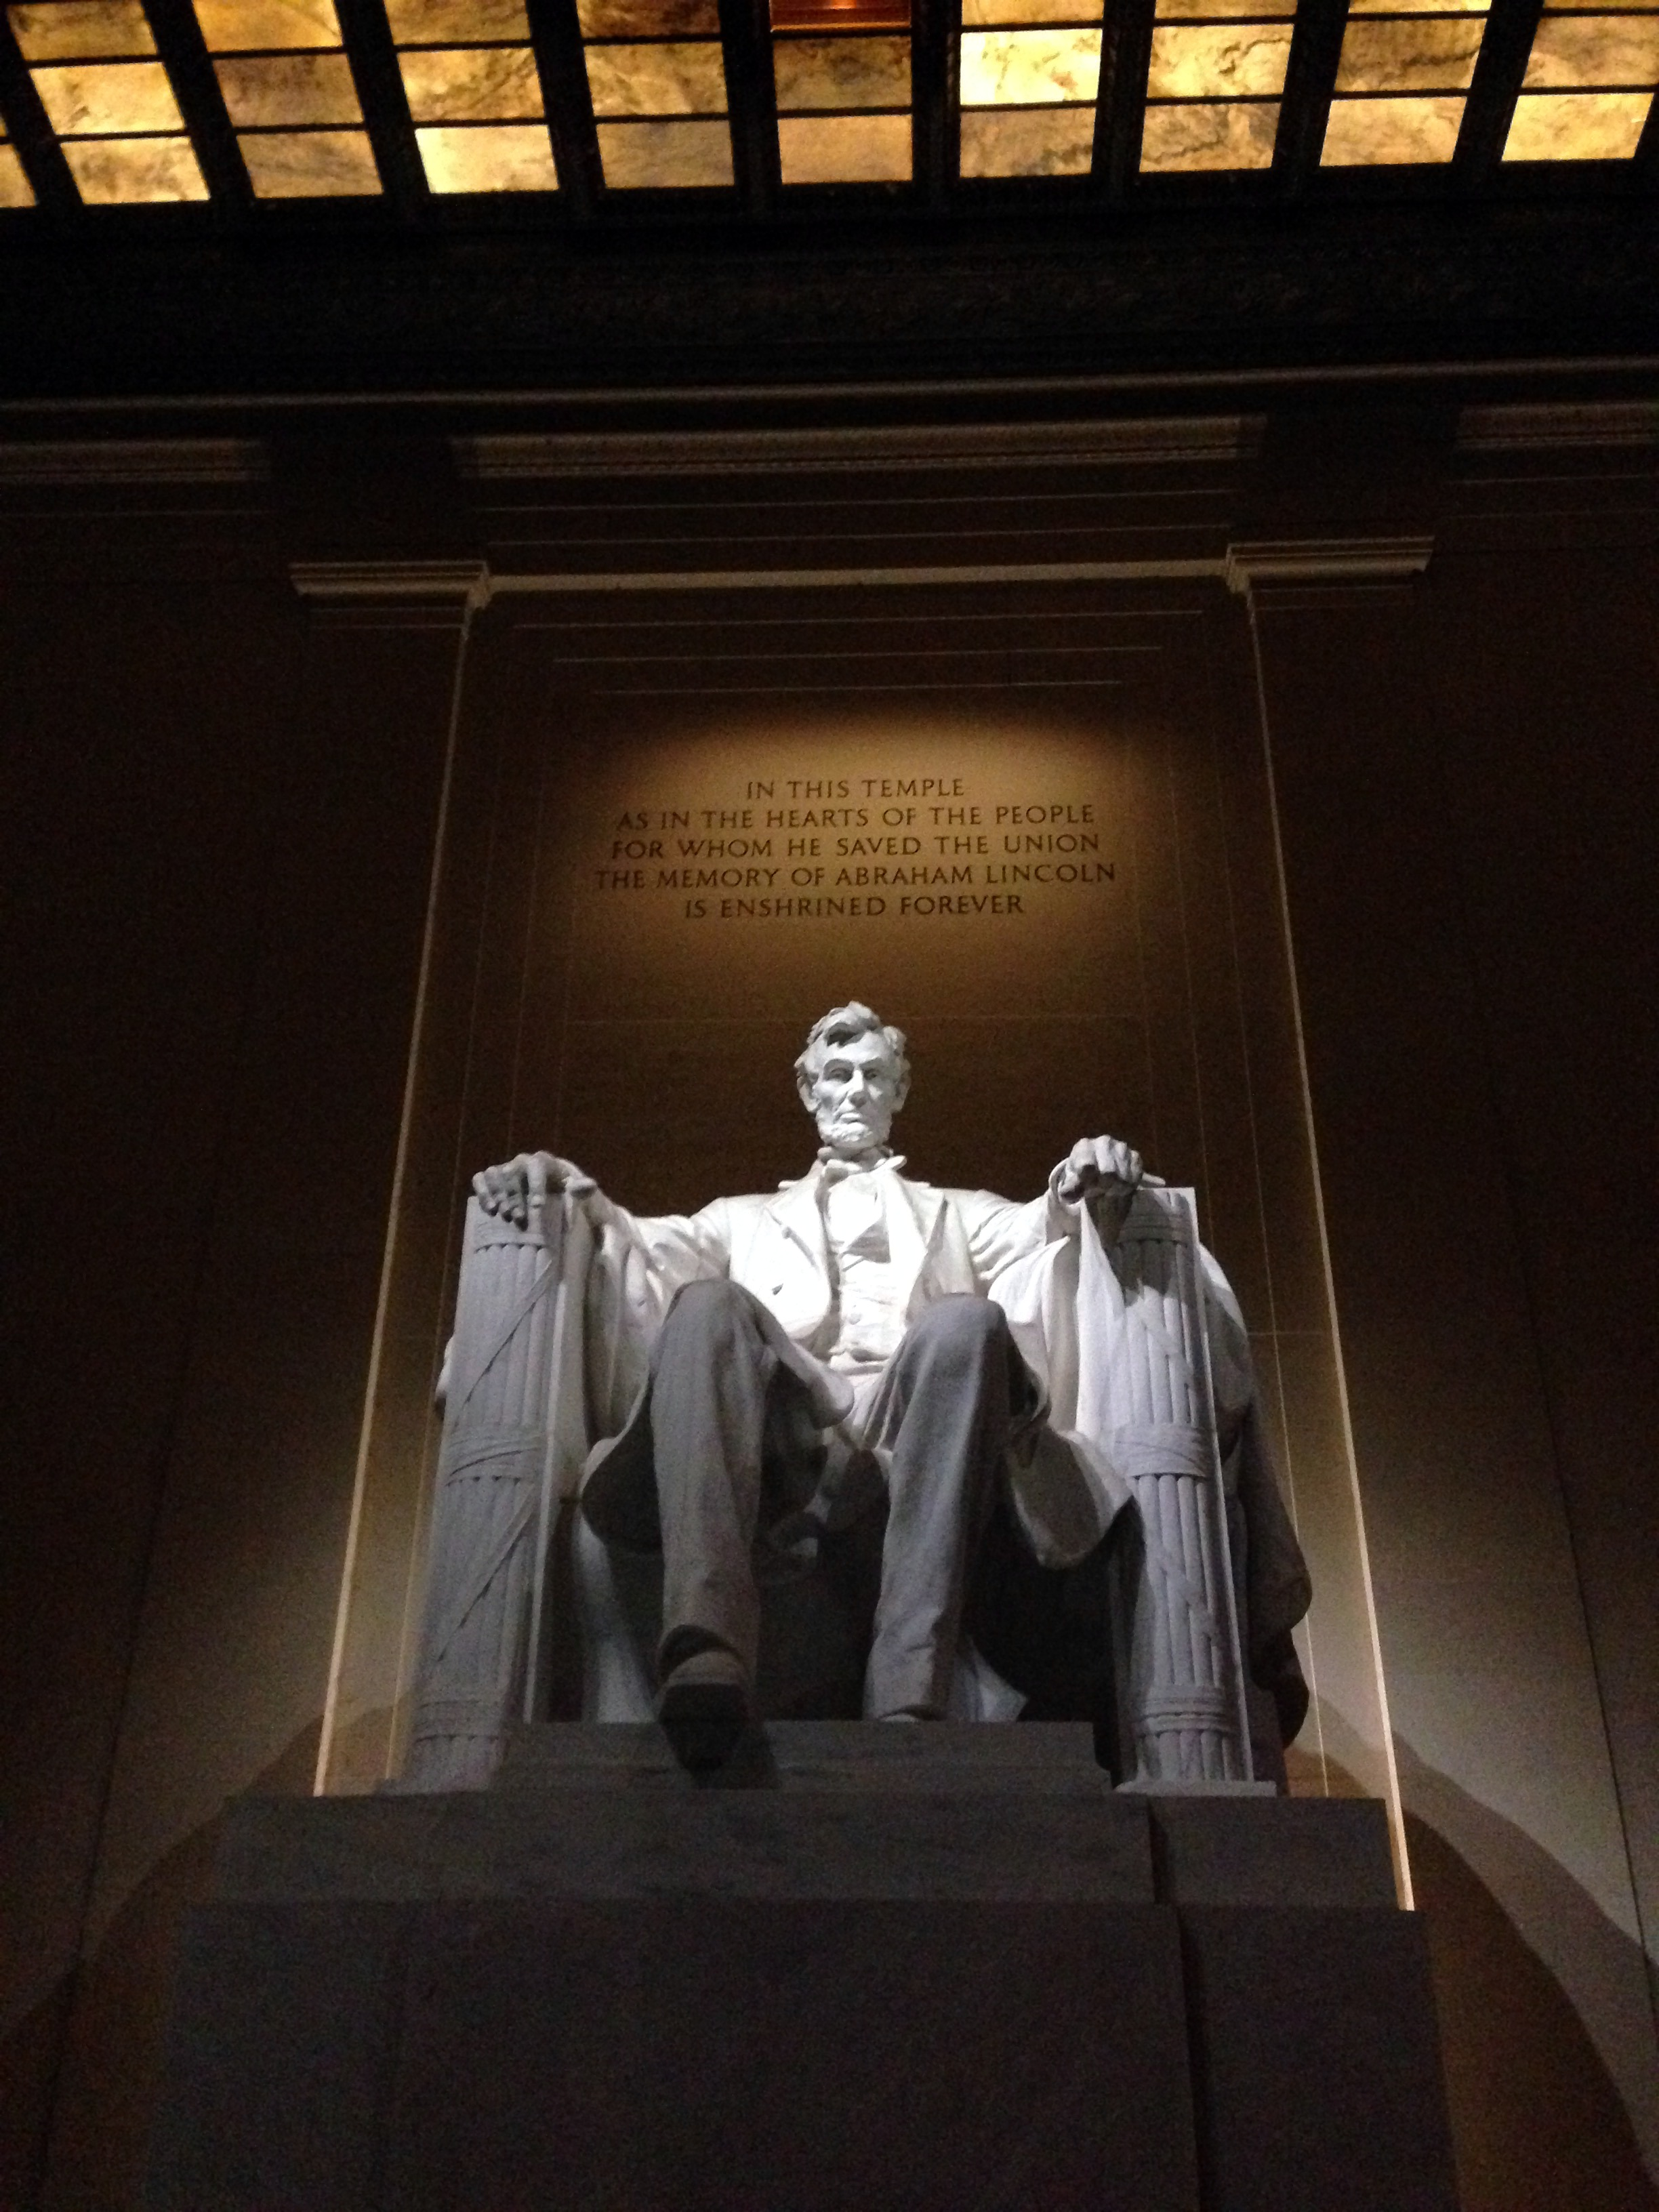 Photo of the Lincoln Memorial at night